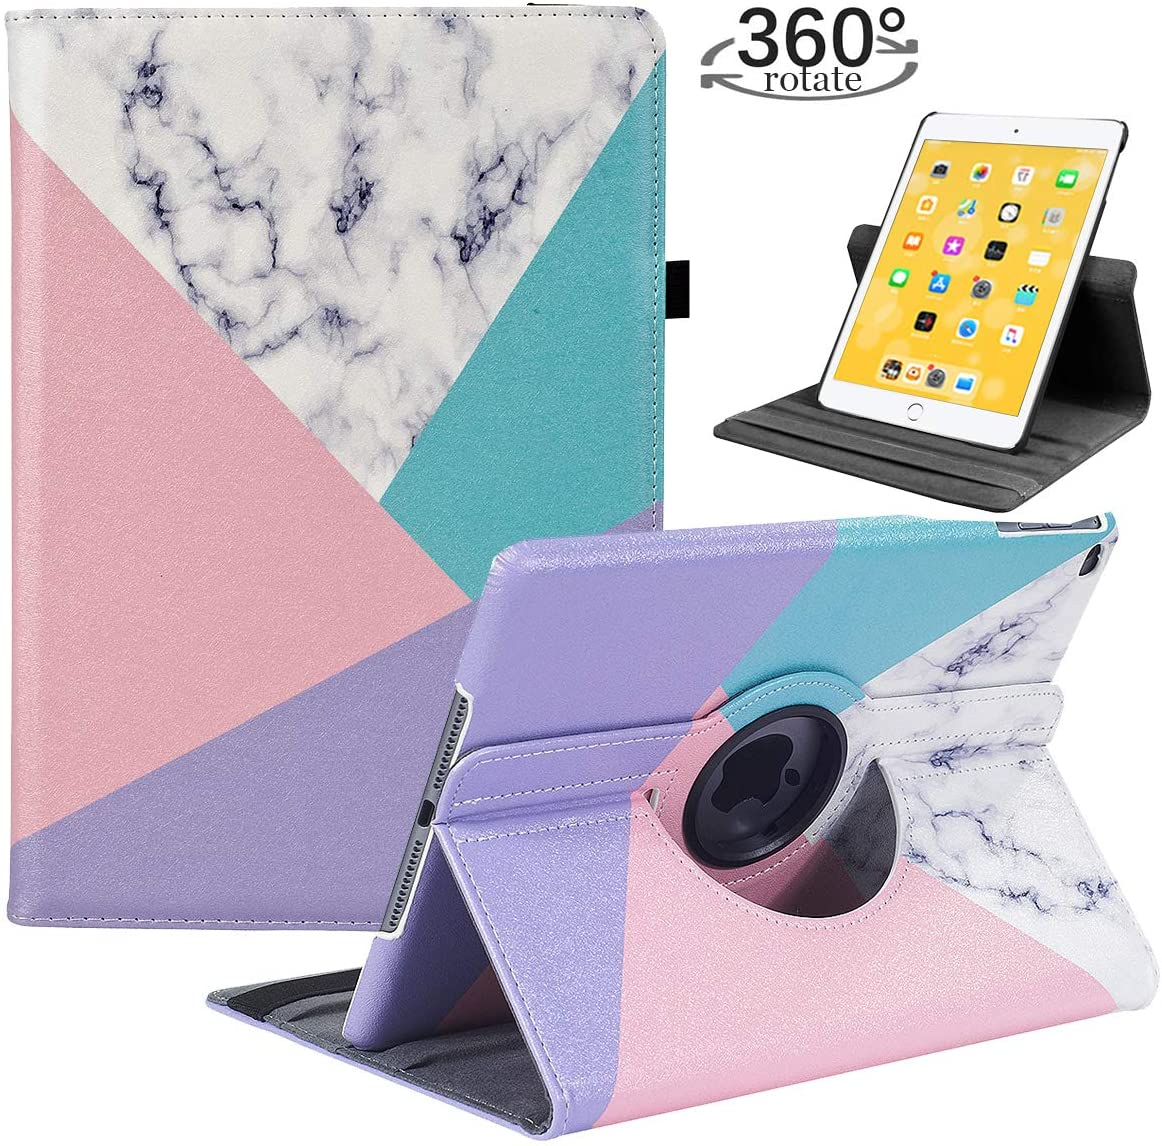 LRCXL iPad 5th/ 6th Generation Case, iPad 9.7 Inch 2017/2018 Case - Rotating Stand Protective Cover with Auto Sleep Wake for Apple ipad Air 2/ iPad Air 2013 (Cube)